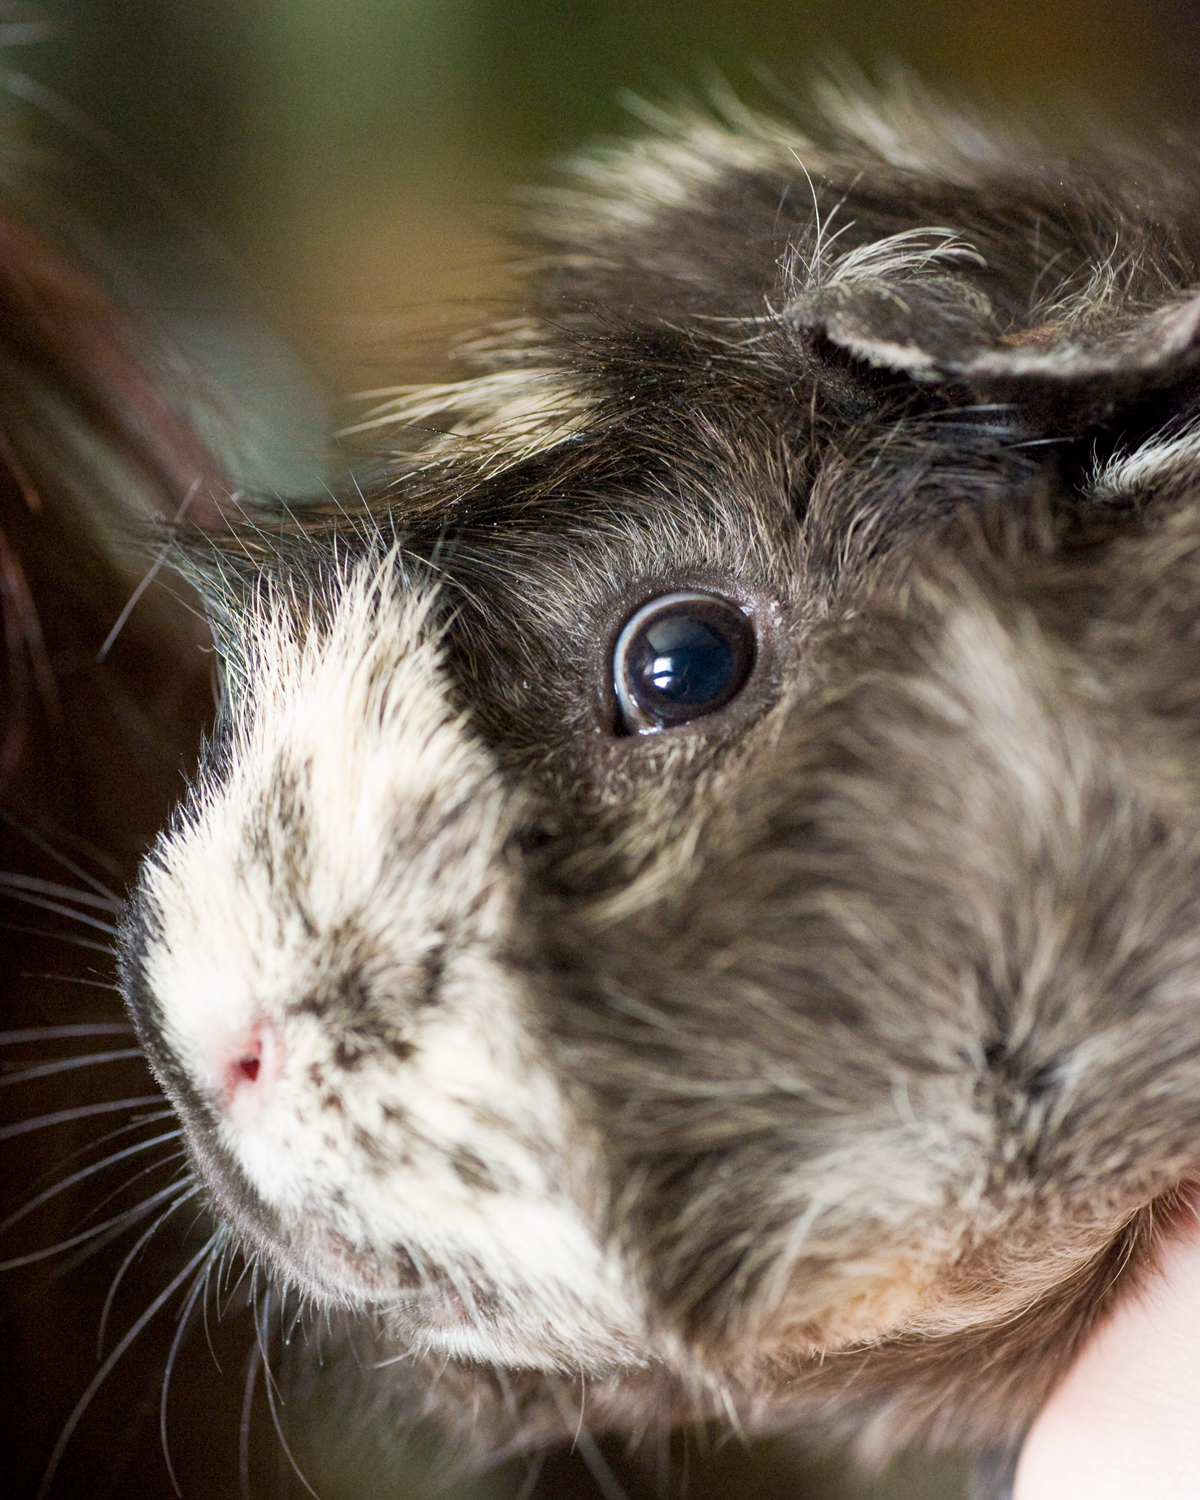 Twisty the guinea pig